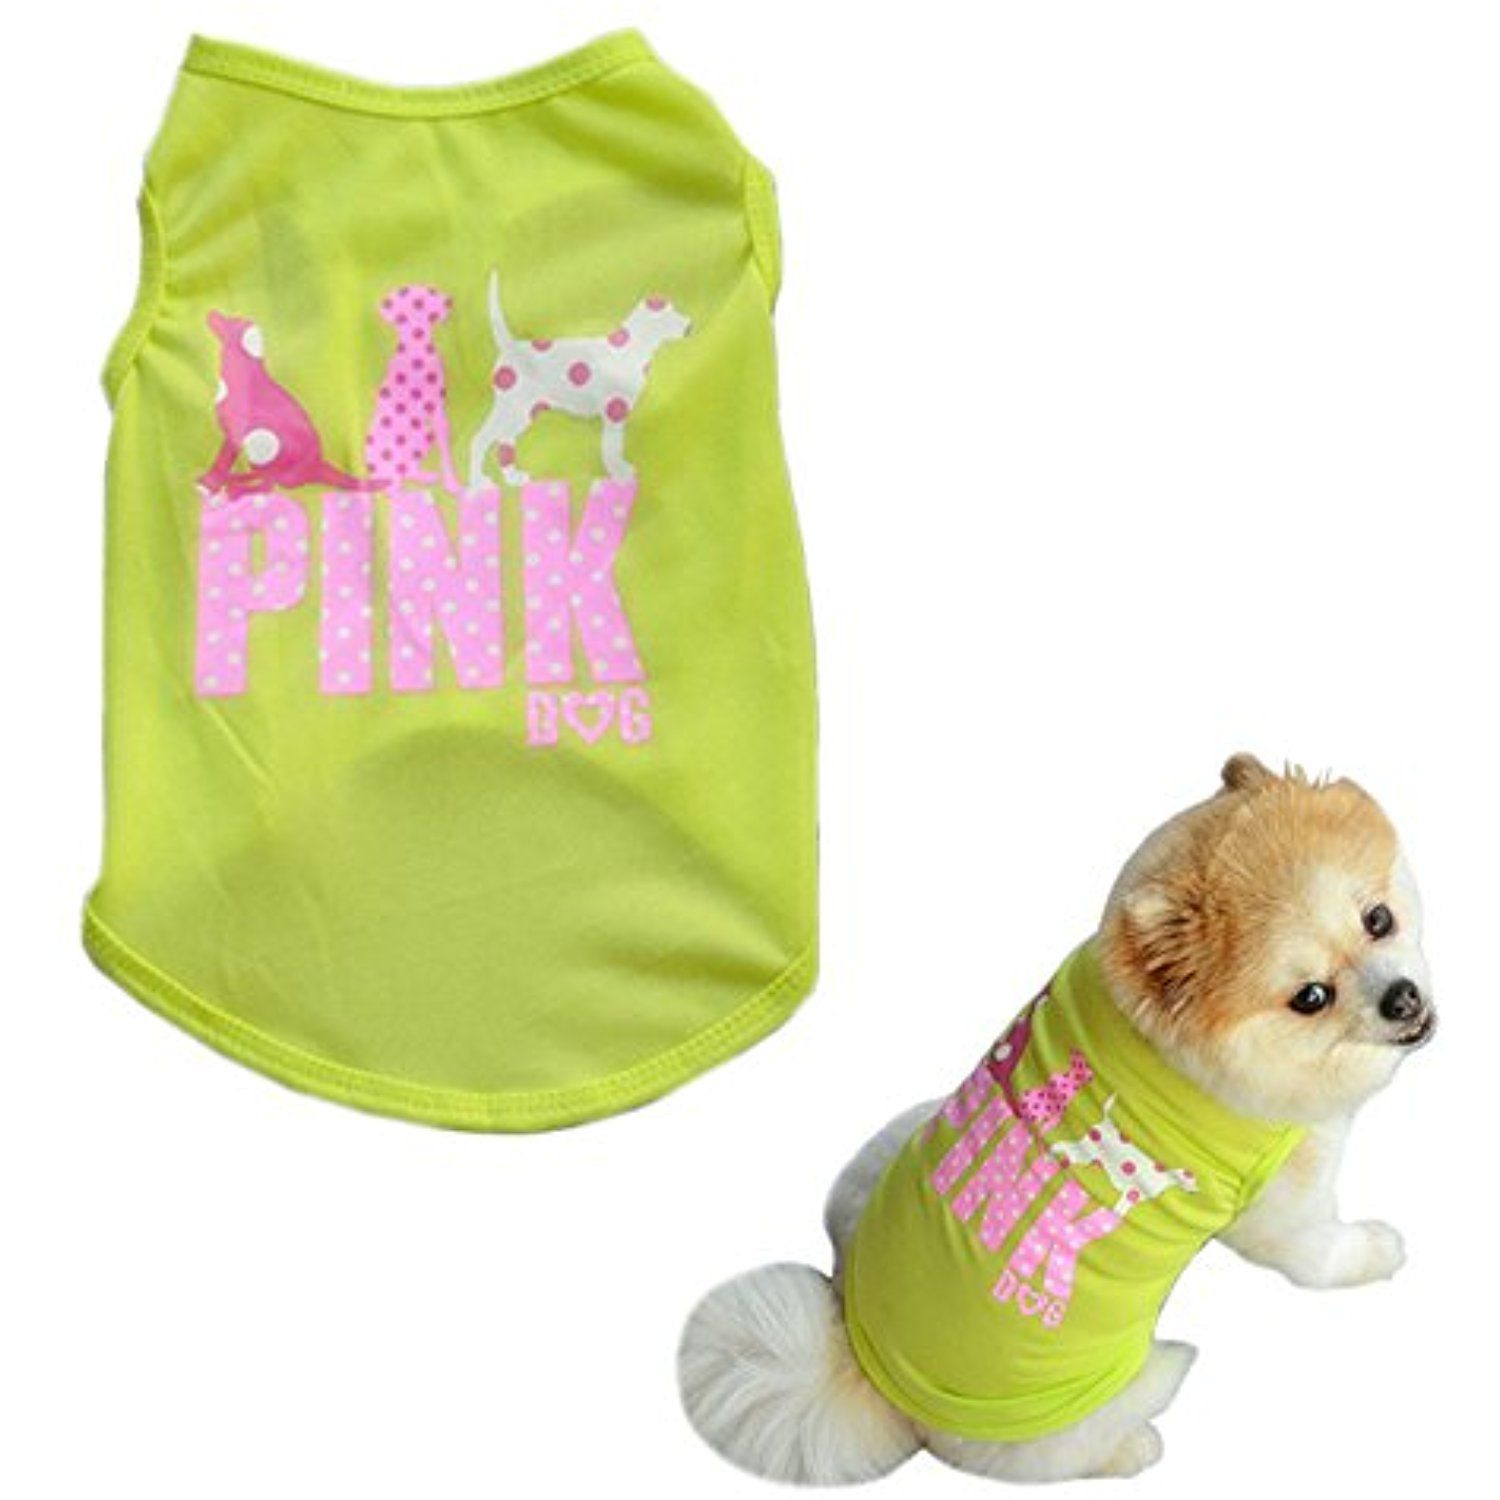 Zonadeals Dog Winter Clothes Sweater Random 2 Pack Ugly Christmas Sweater for Small Medium Large Dogs